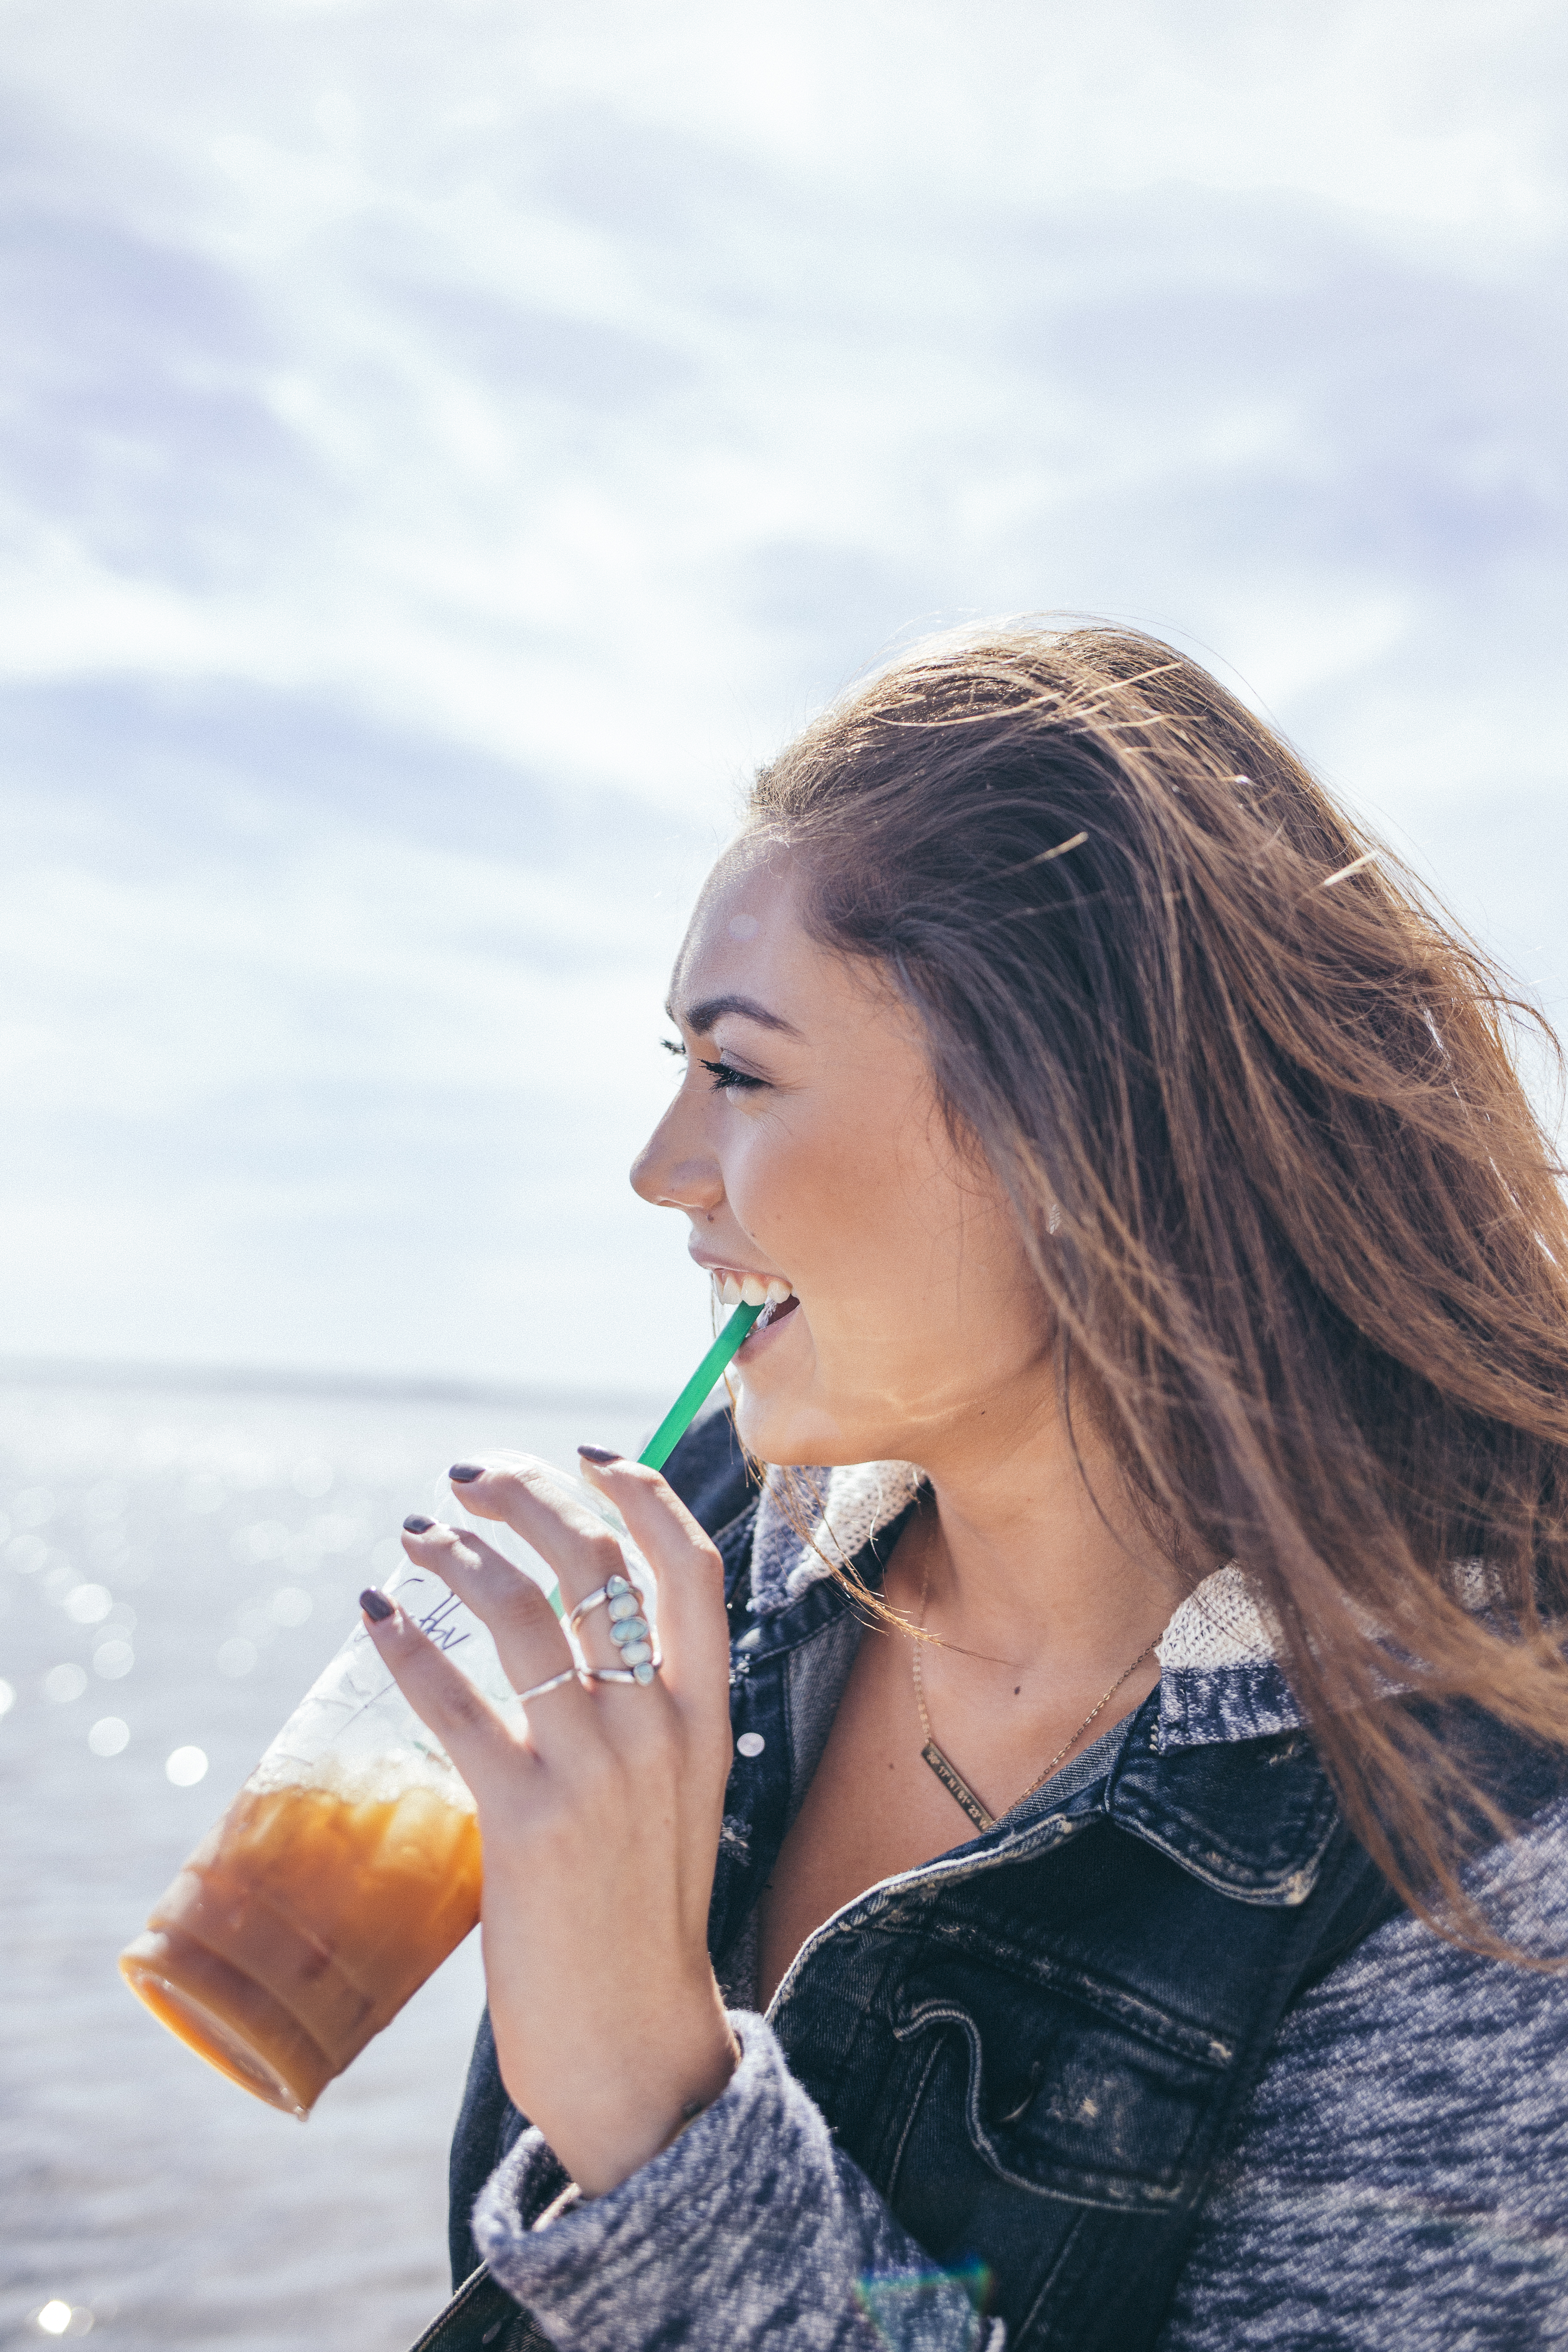 Woman Wearing Black And Grey Jacket Holding Glass Cup While Drinking Near Body Of Water During